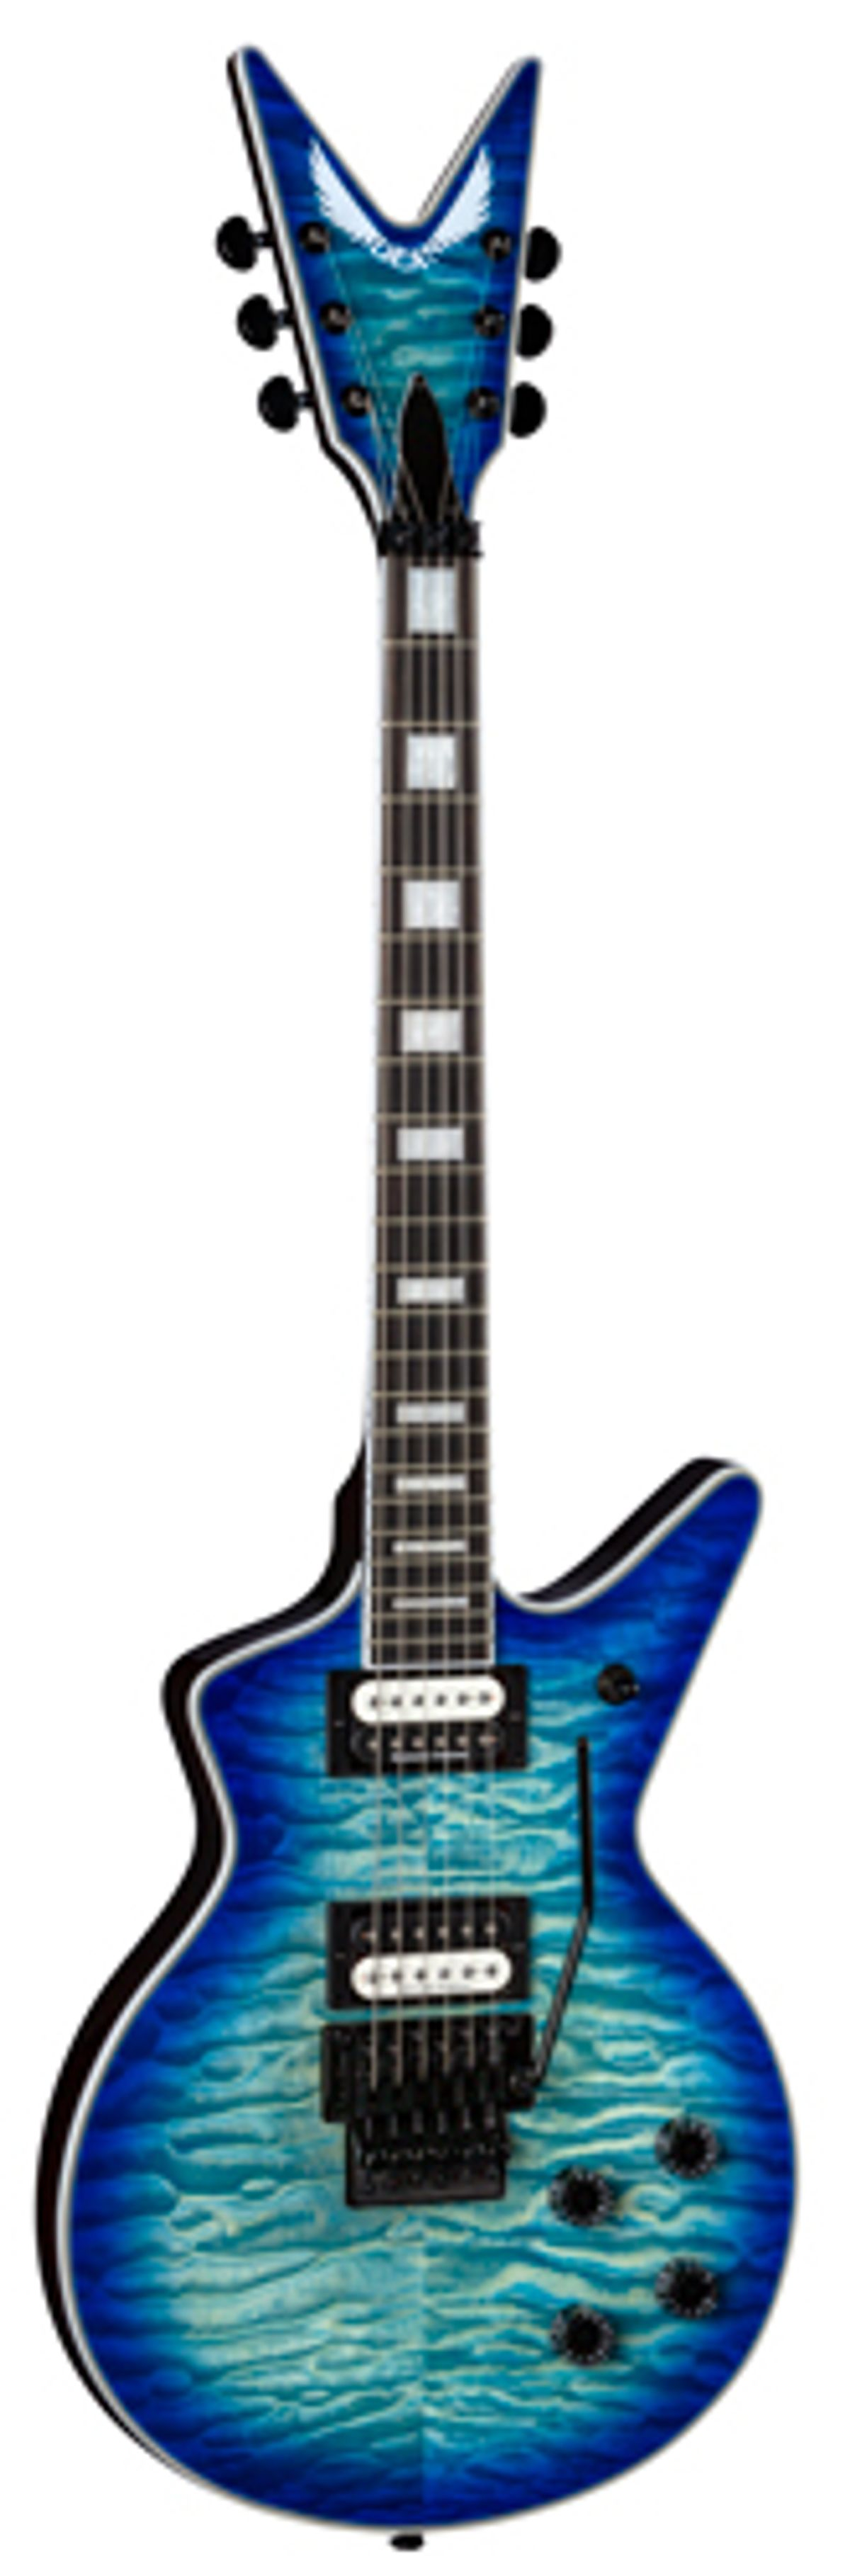 Dean Guitars Expands Select Series with Cadi Select Quilt Top Floyd Ocean Burst